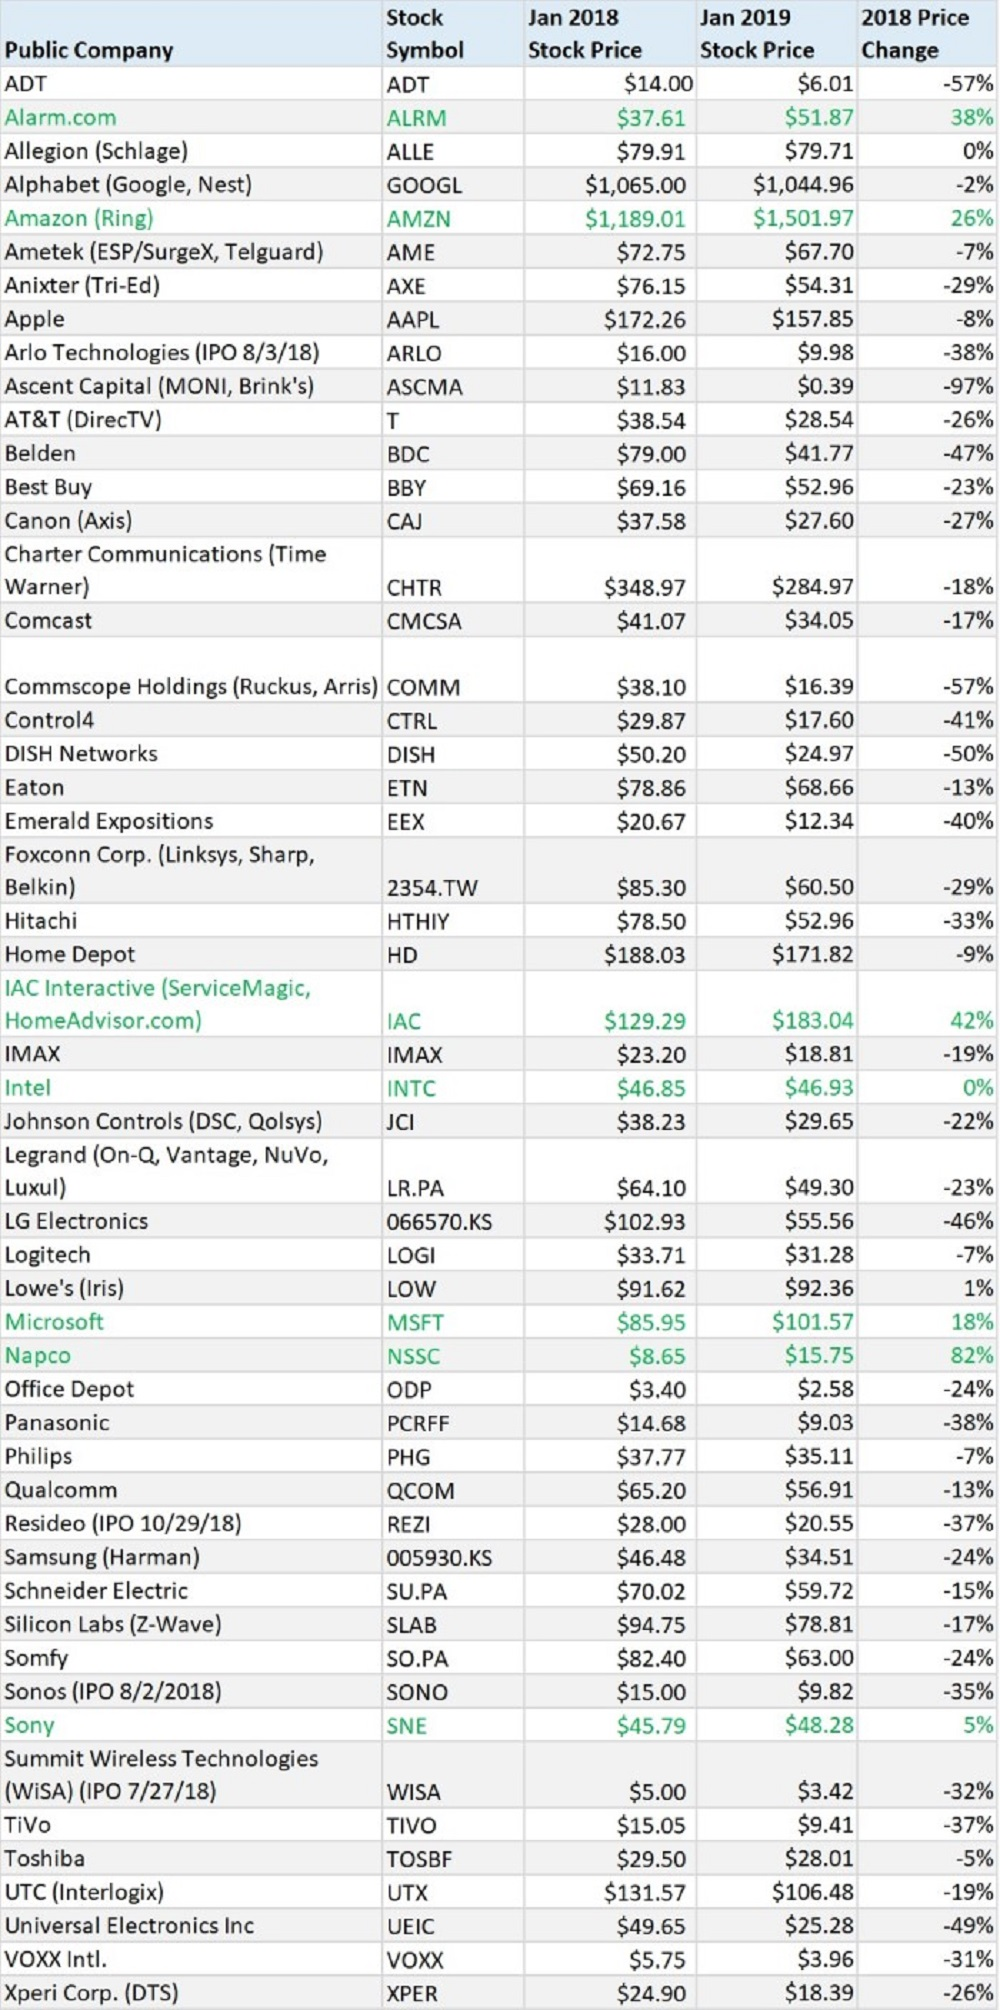 Smart Home Stock prices over 2018